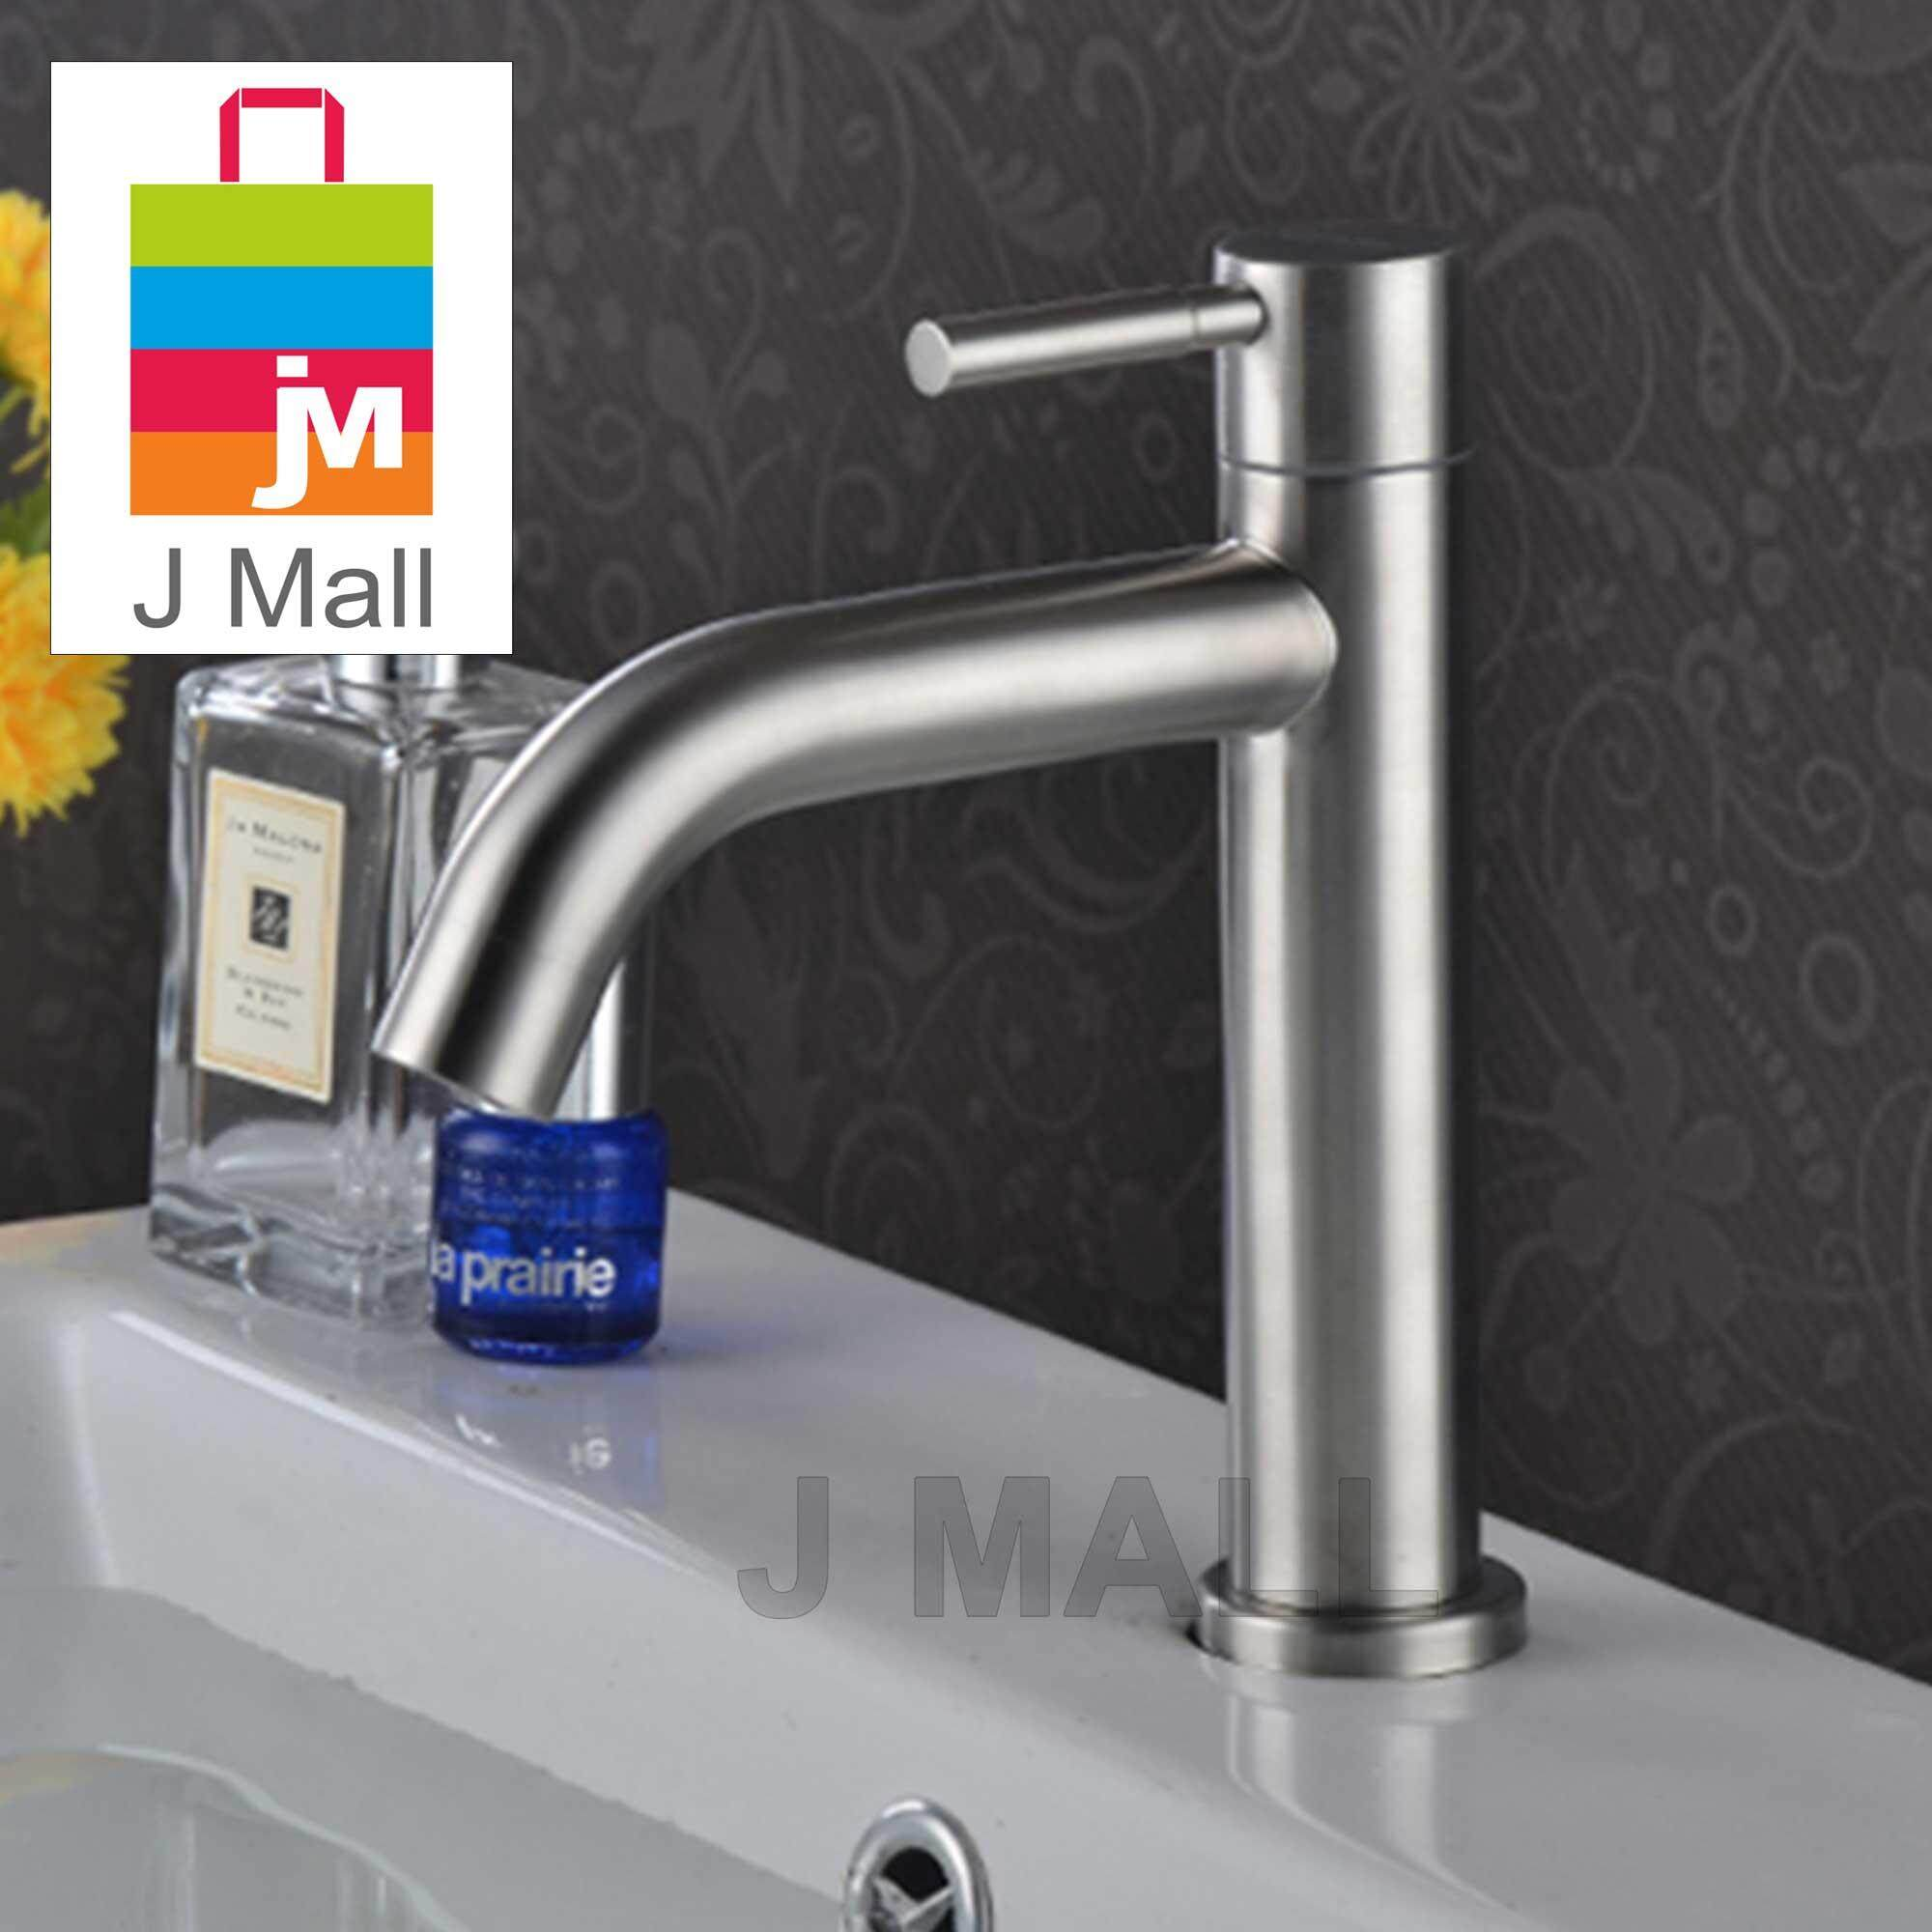 Plumbing for the Best Prices in Malaysia